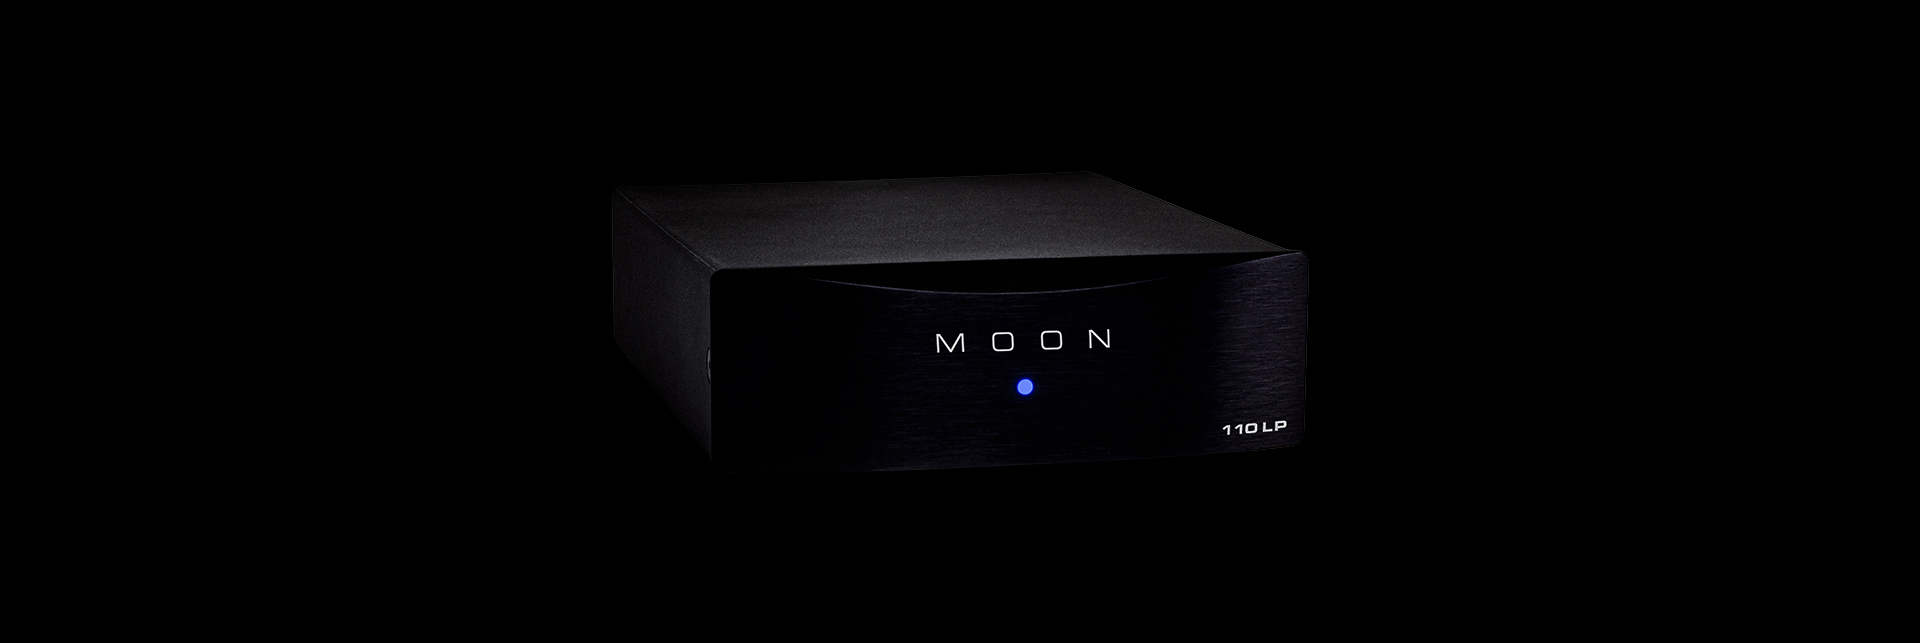 High End Phono Preamp 110lp Preamplifier Moon Simaudio Magnetic Cartridge By Lt1028 V2